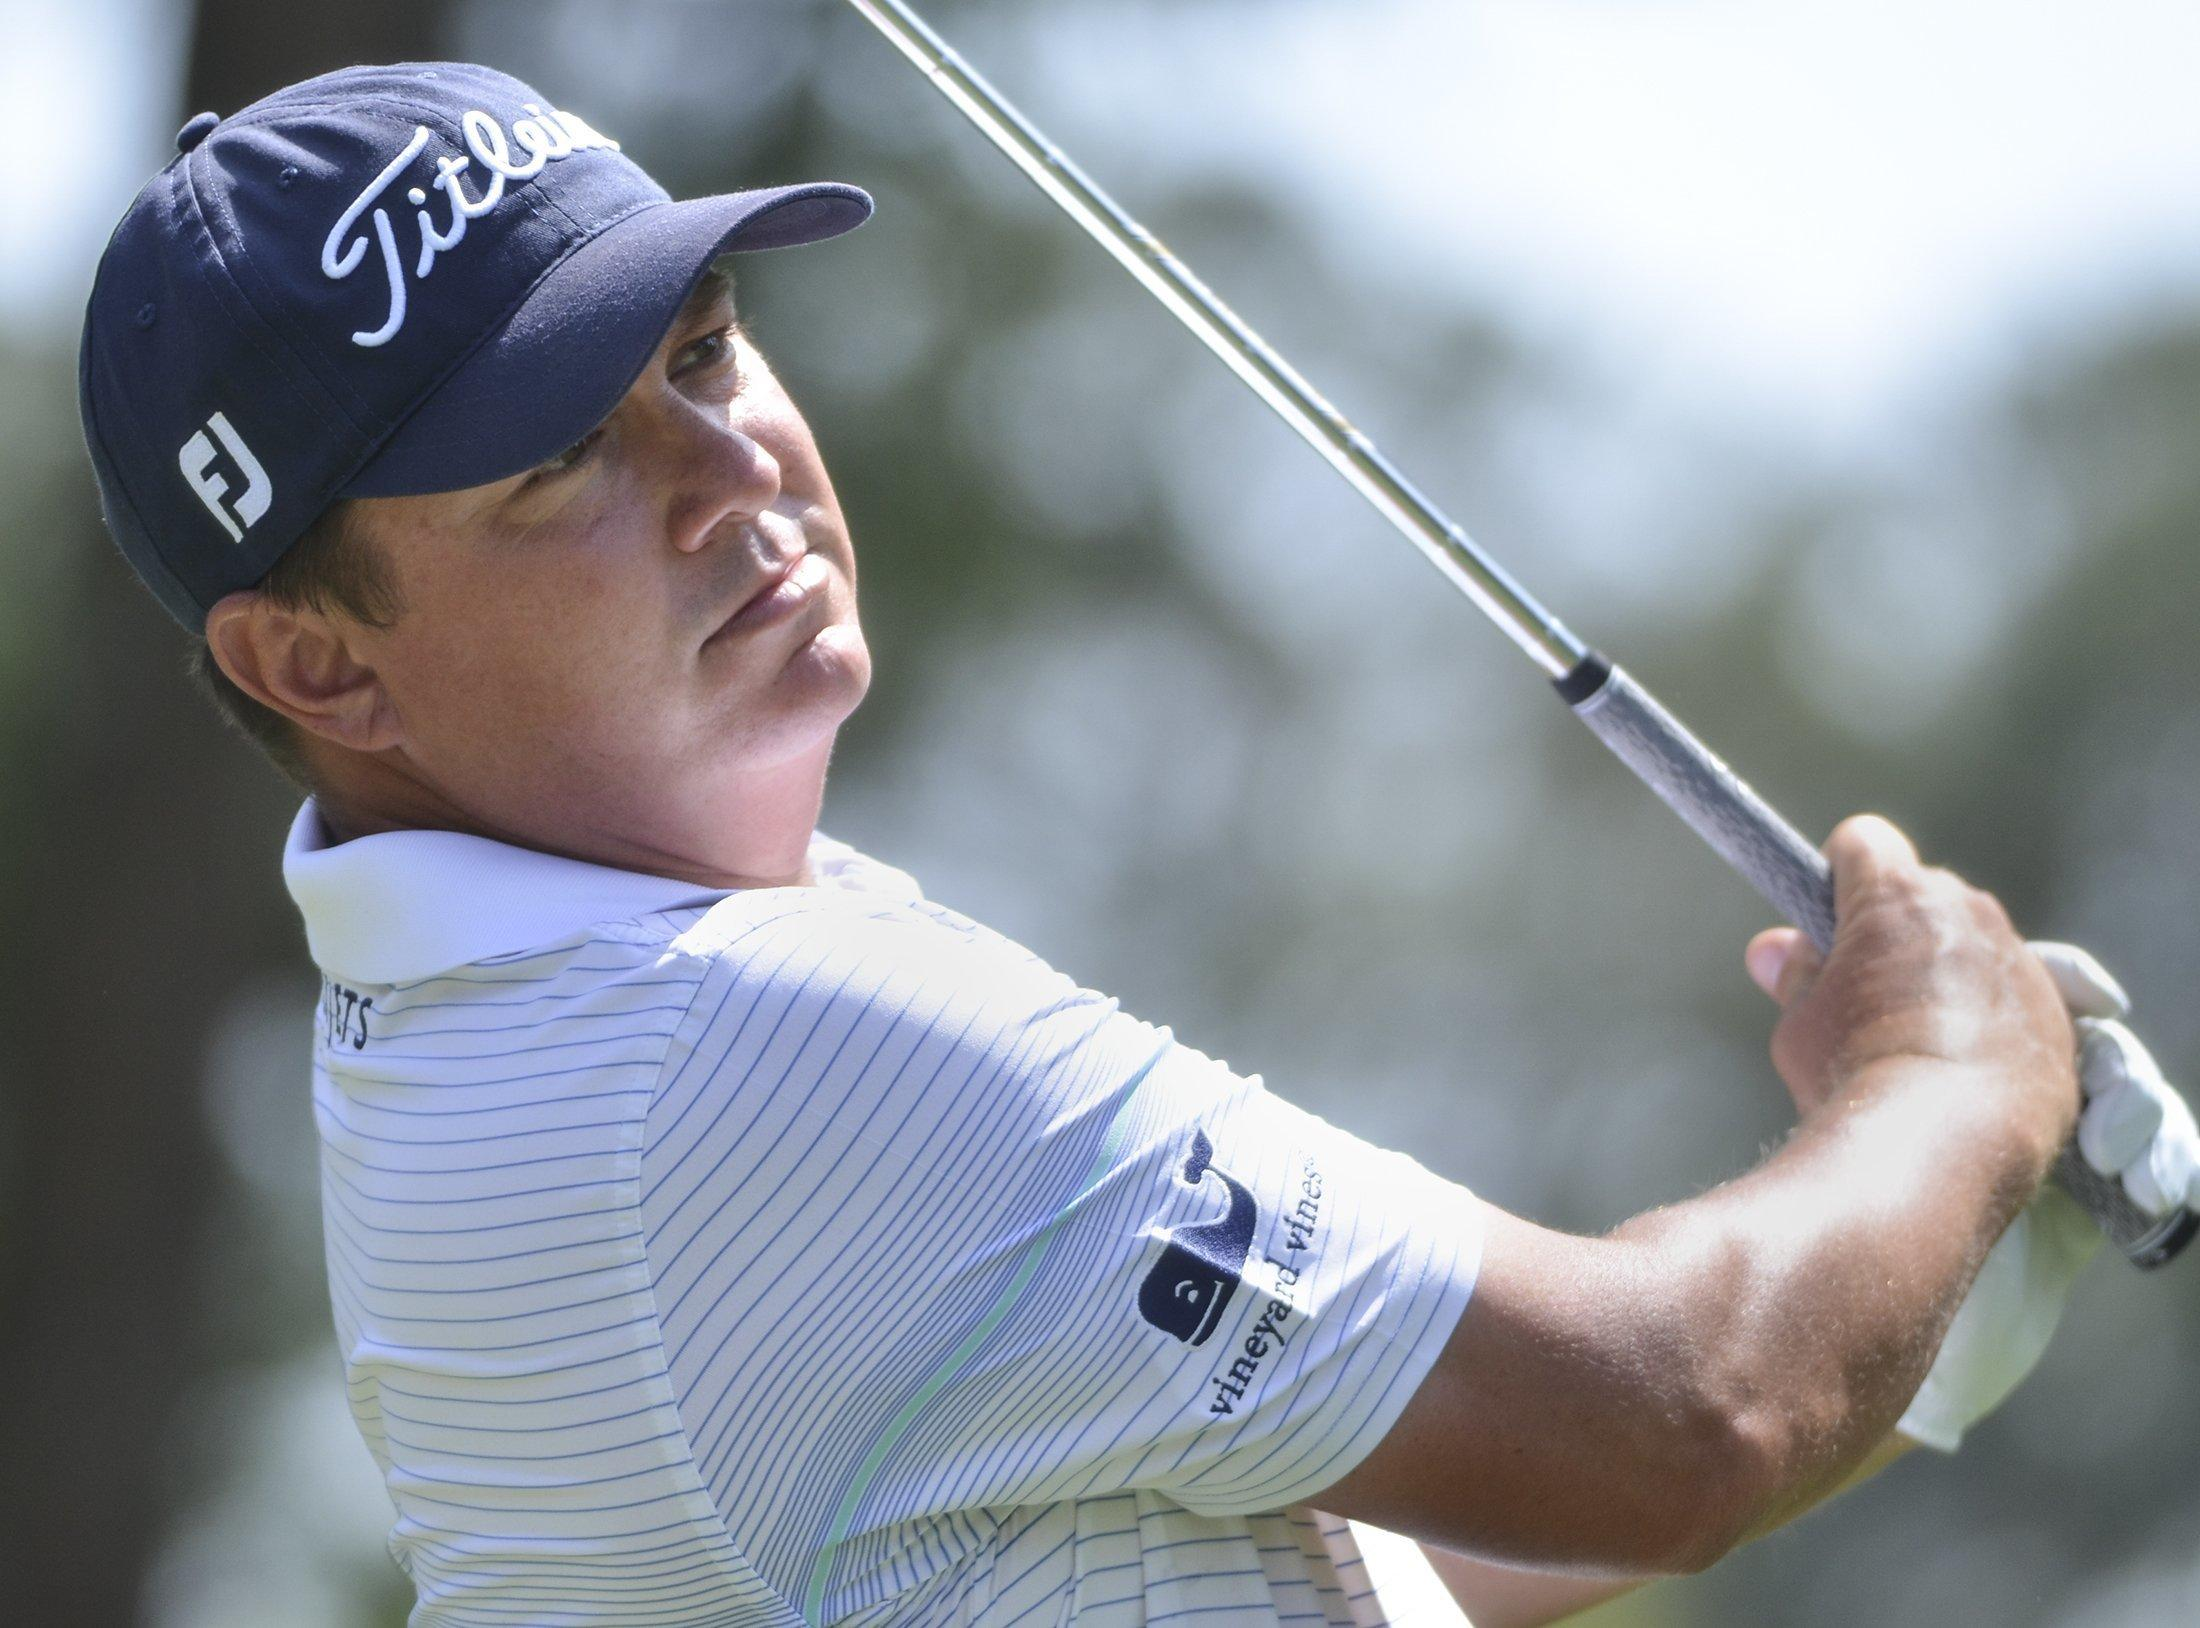 Jason Dufner Eagles Twice To Lead Rbc Heritage Through 3 Rounds